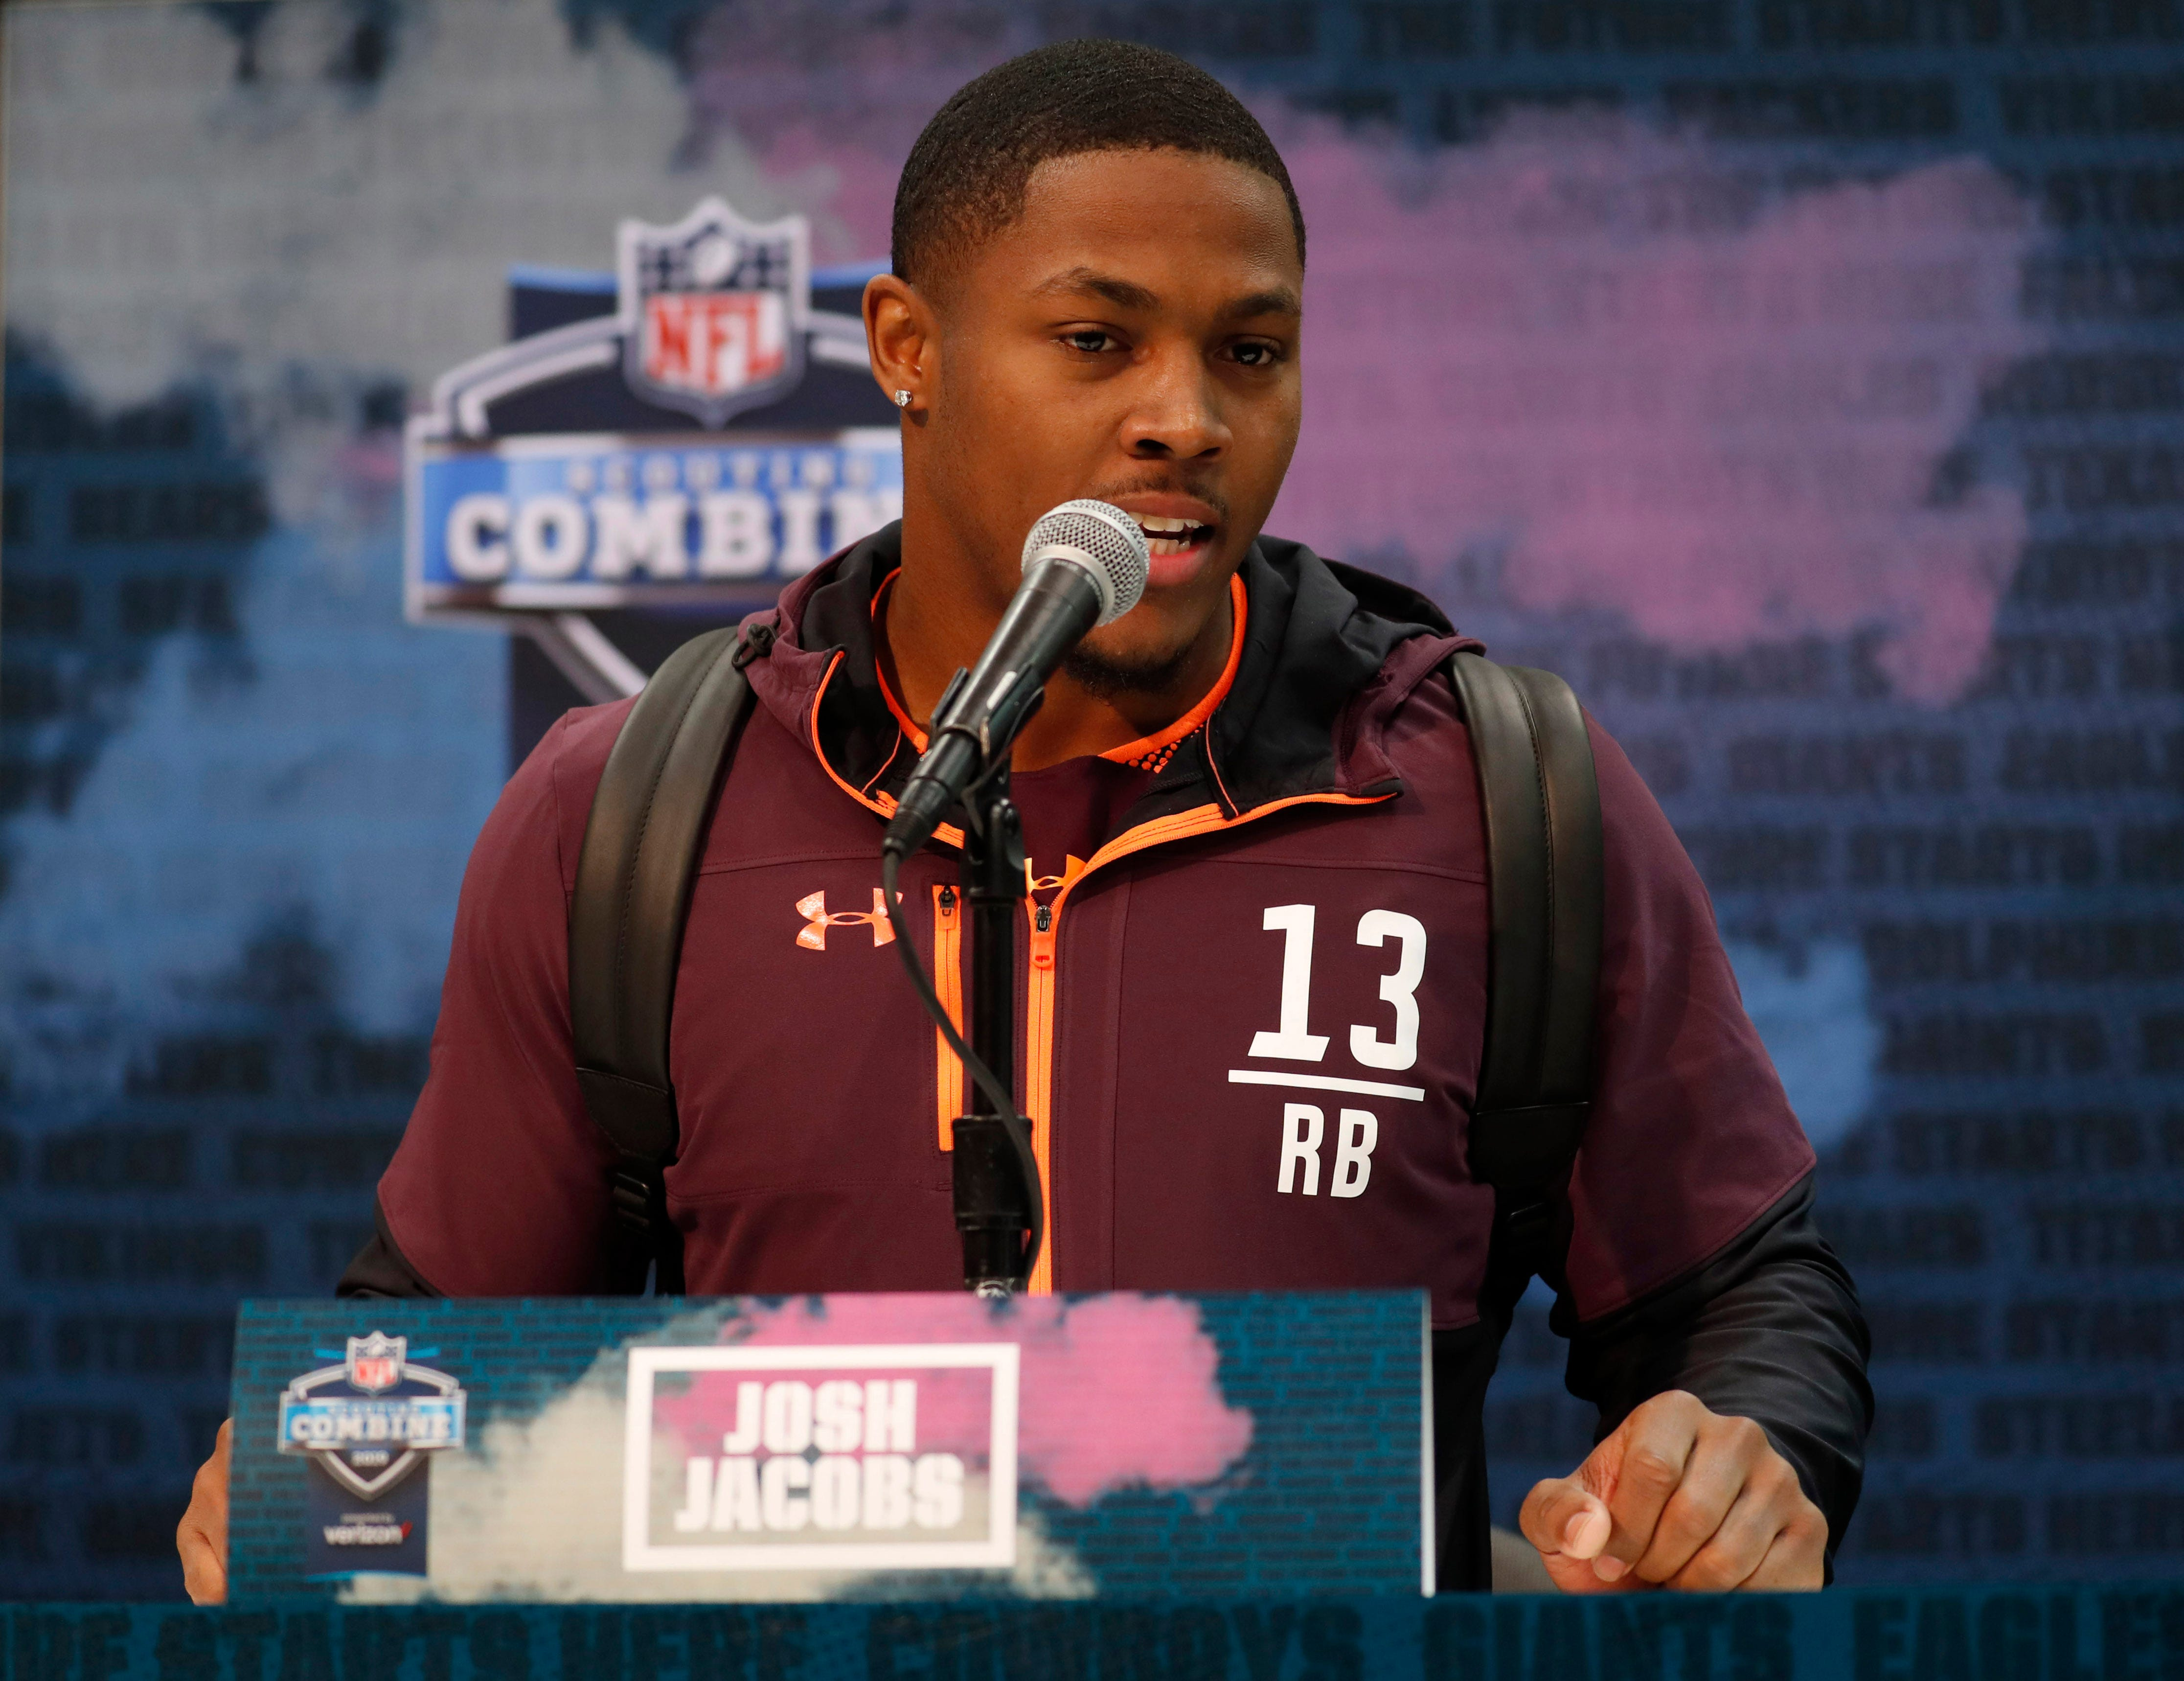 Josh Jacobs speaks to the media during the combine at the Indianapolis Convention Center.